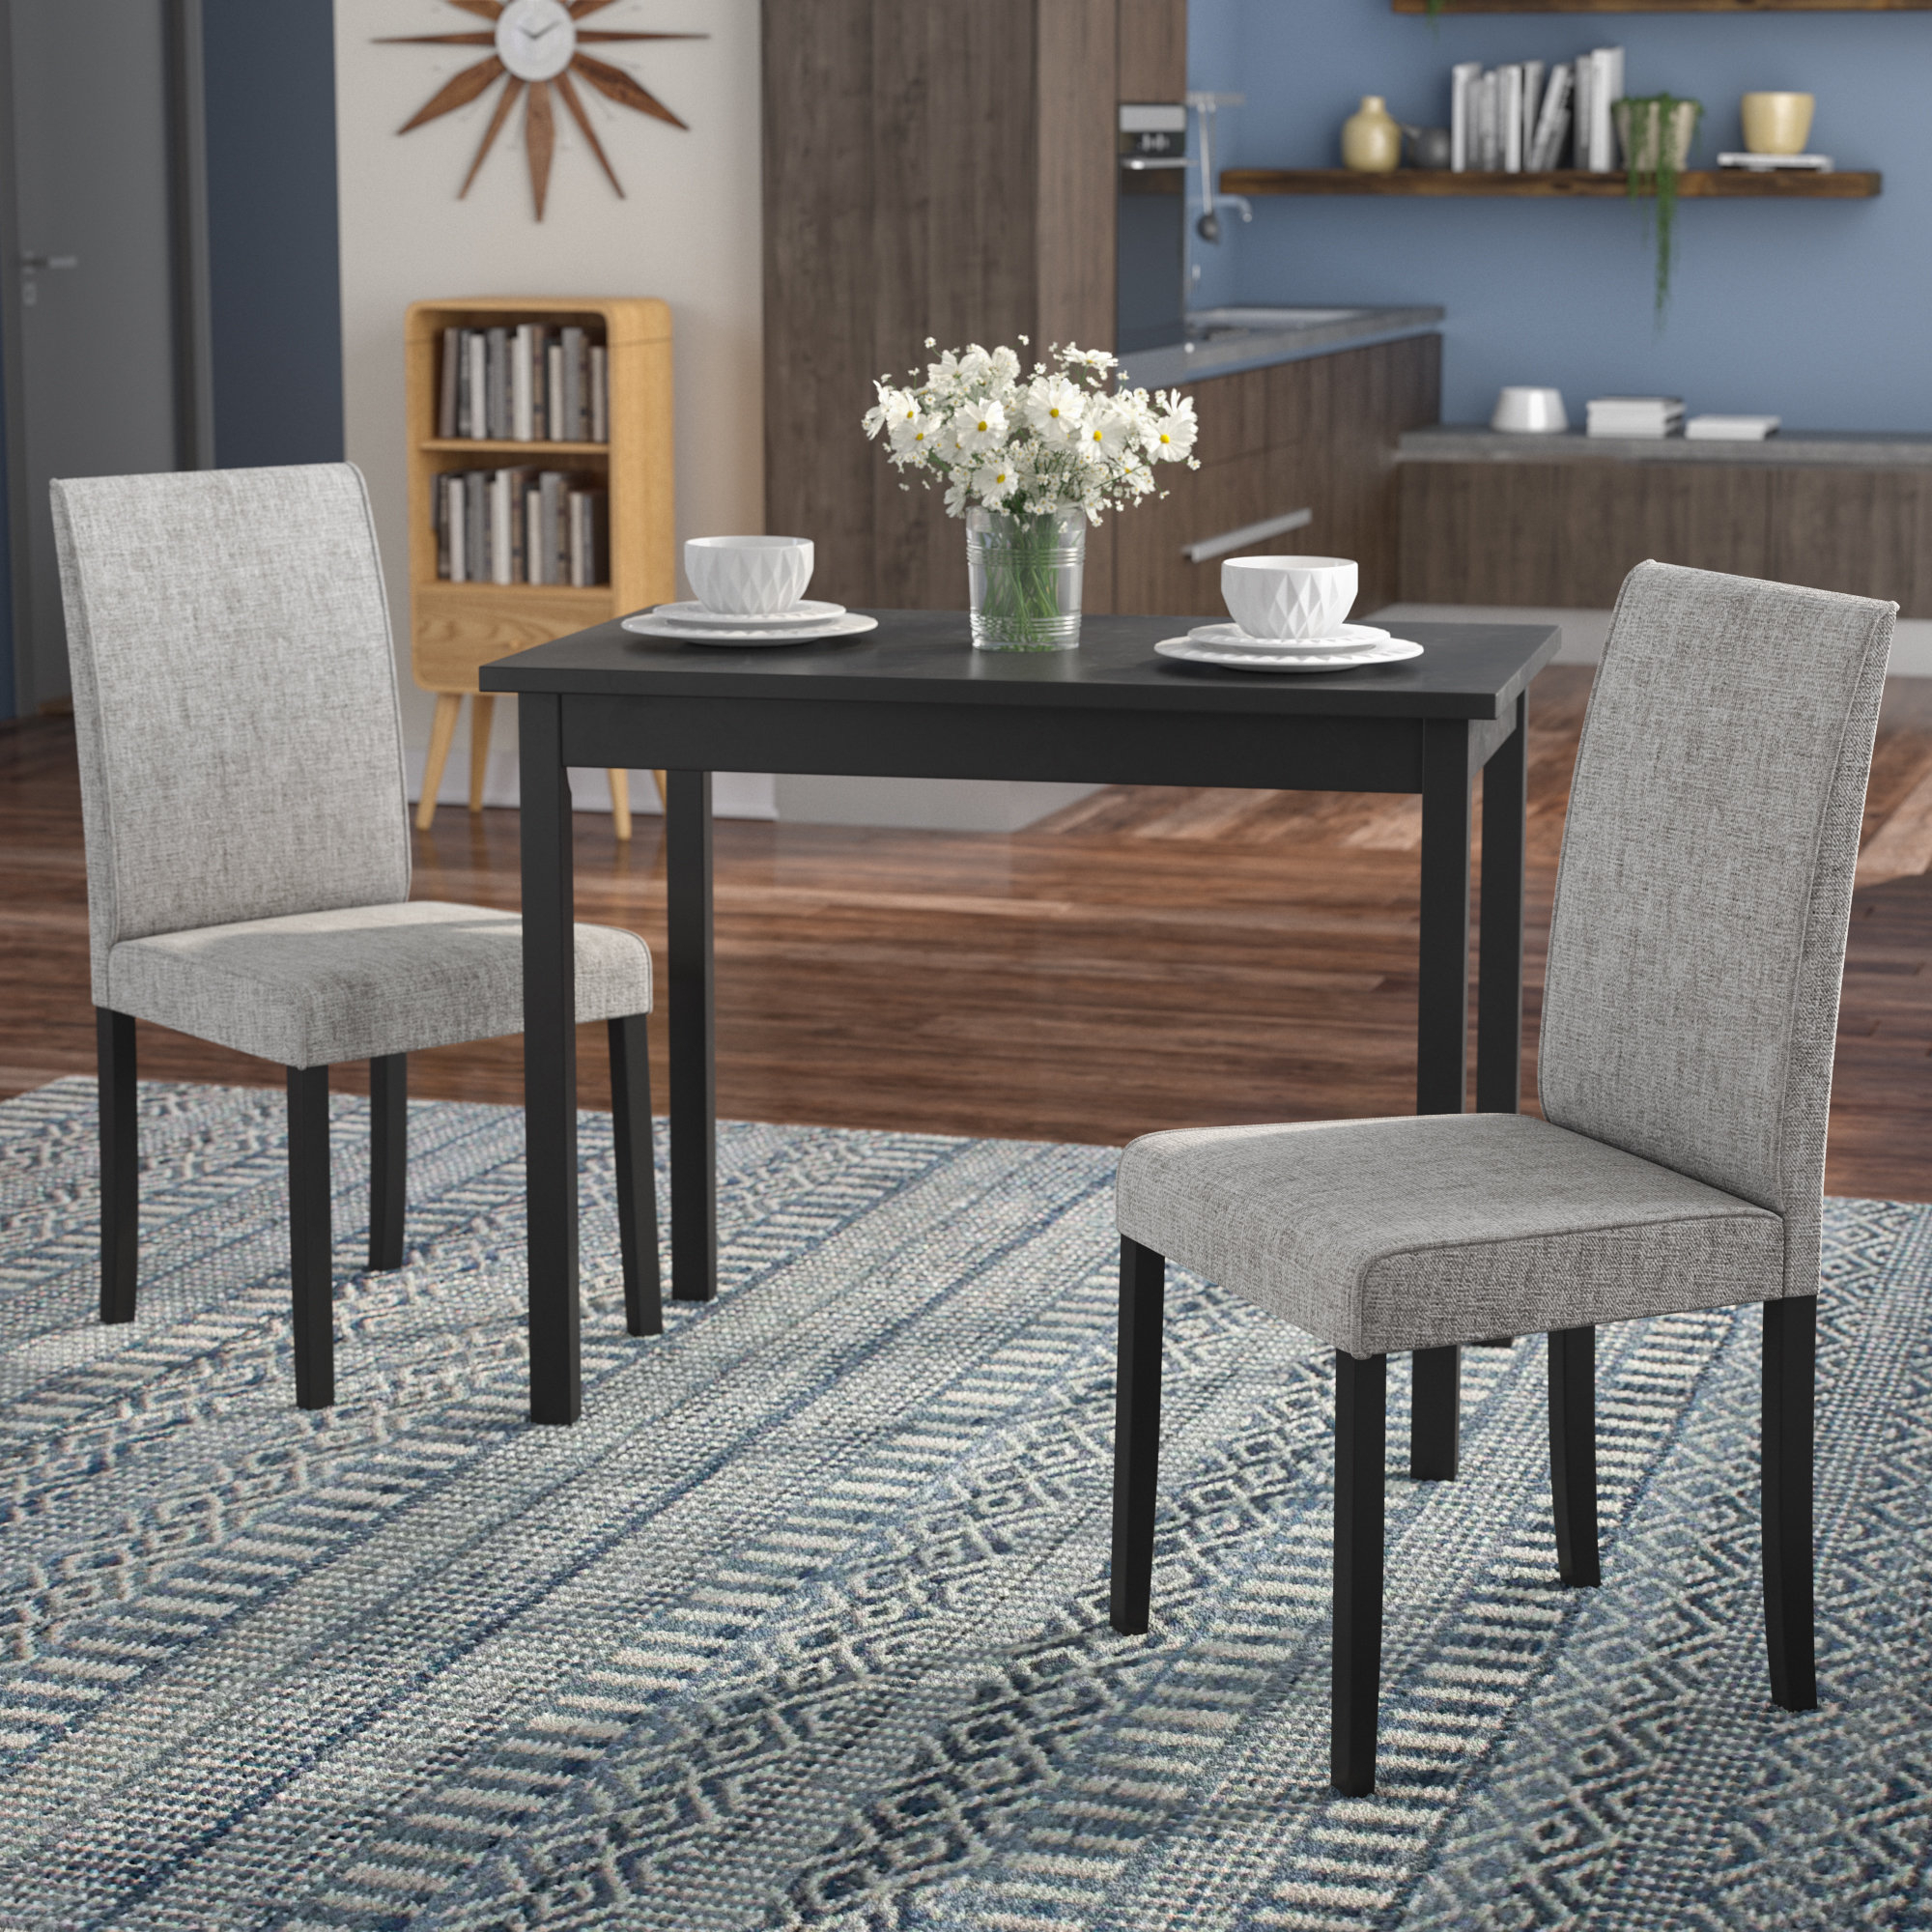 Darvell 3 Piece Dining Set Throughout Best And Newest 3 Piece Dining Sets (View 4 of 20)